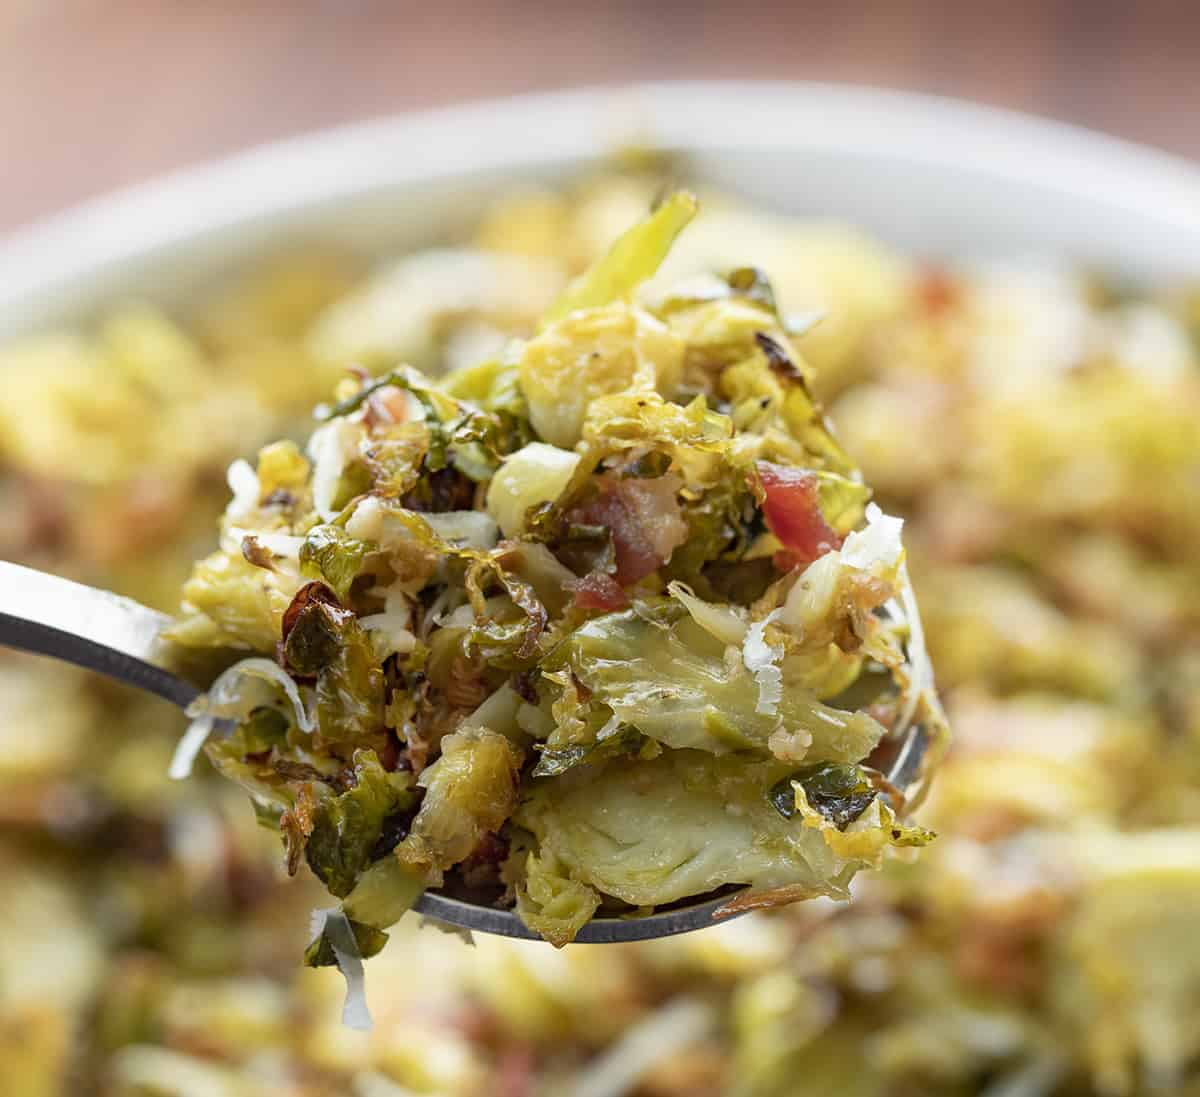 Spoonful of Shredded Brussels Sprouts